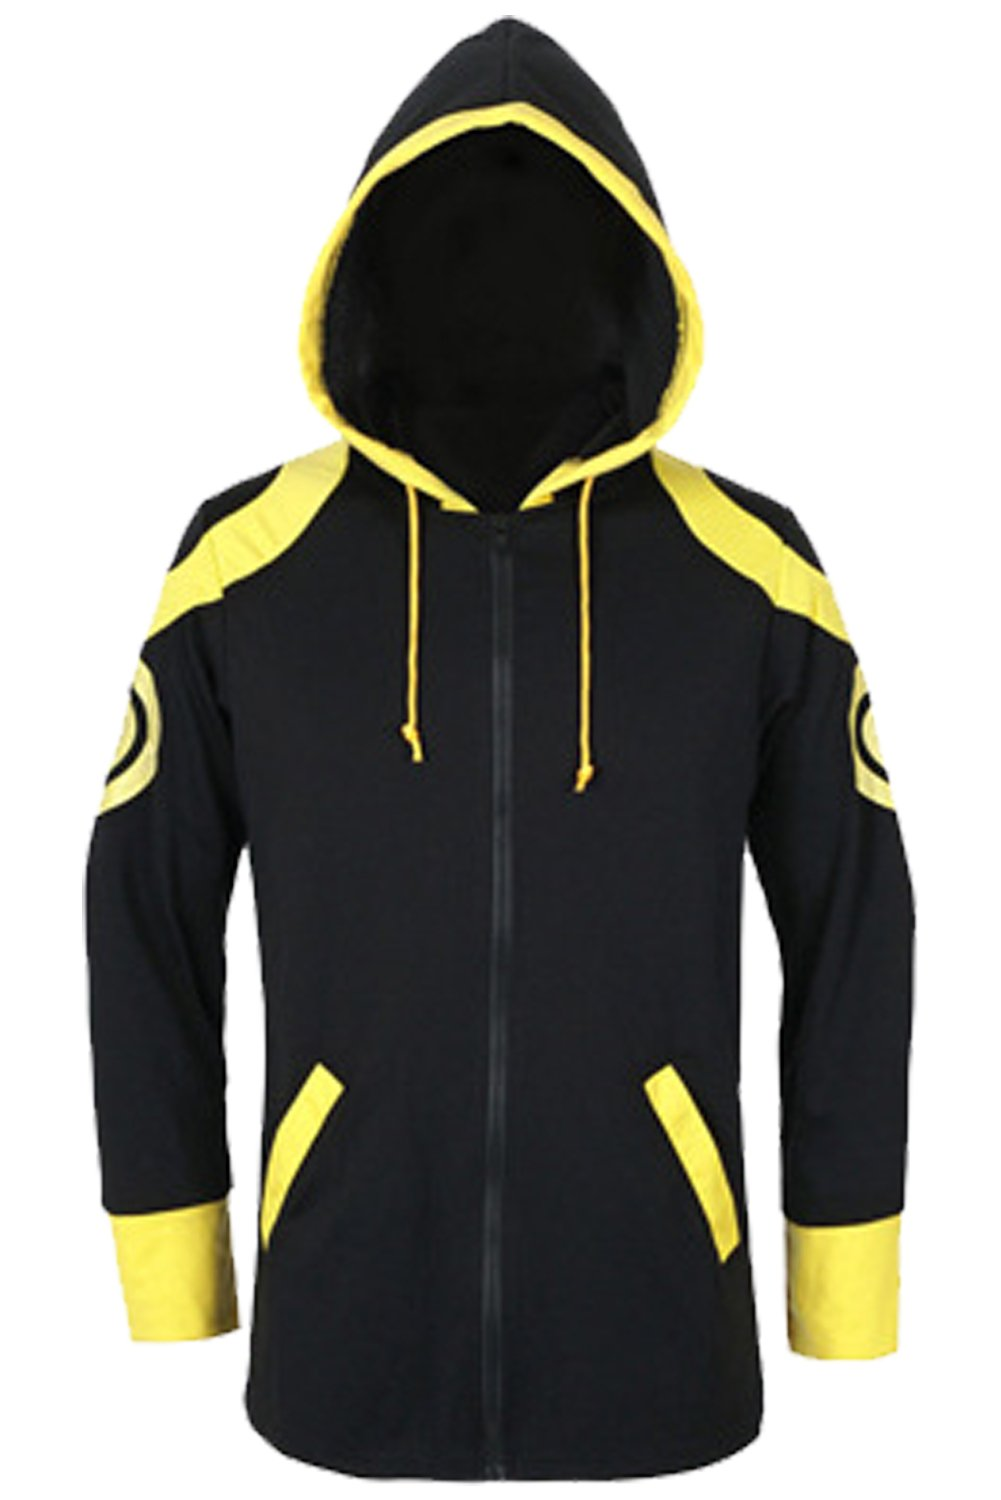 Costhat Casual Mystic Messenger 707 Extreme Luciel Choi Jacket Hoodie by Costhat (Image #1)